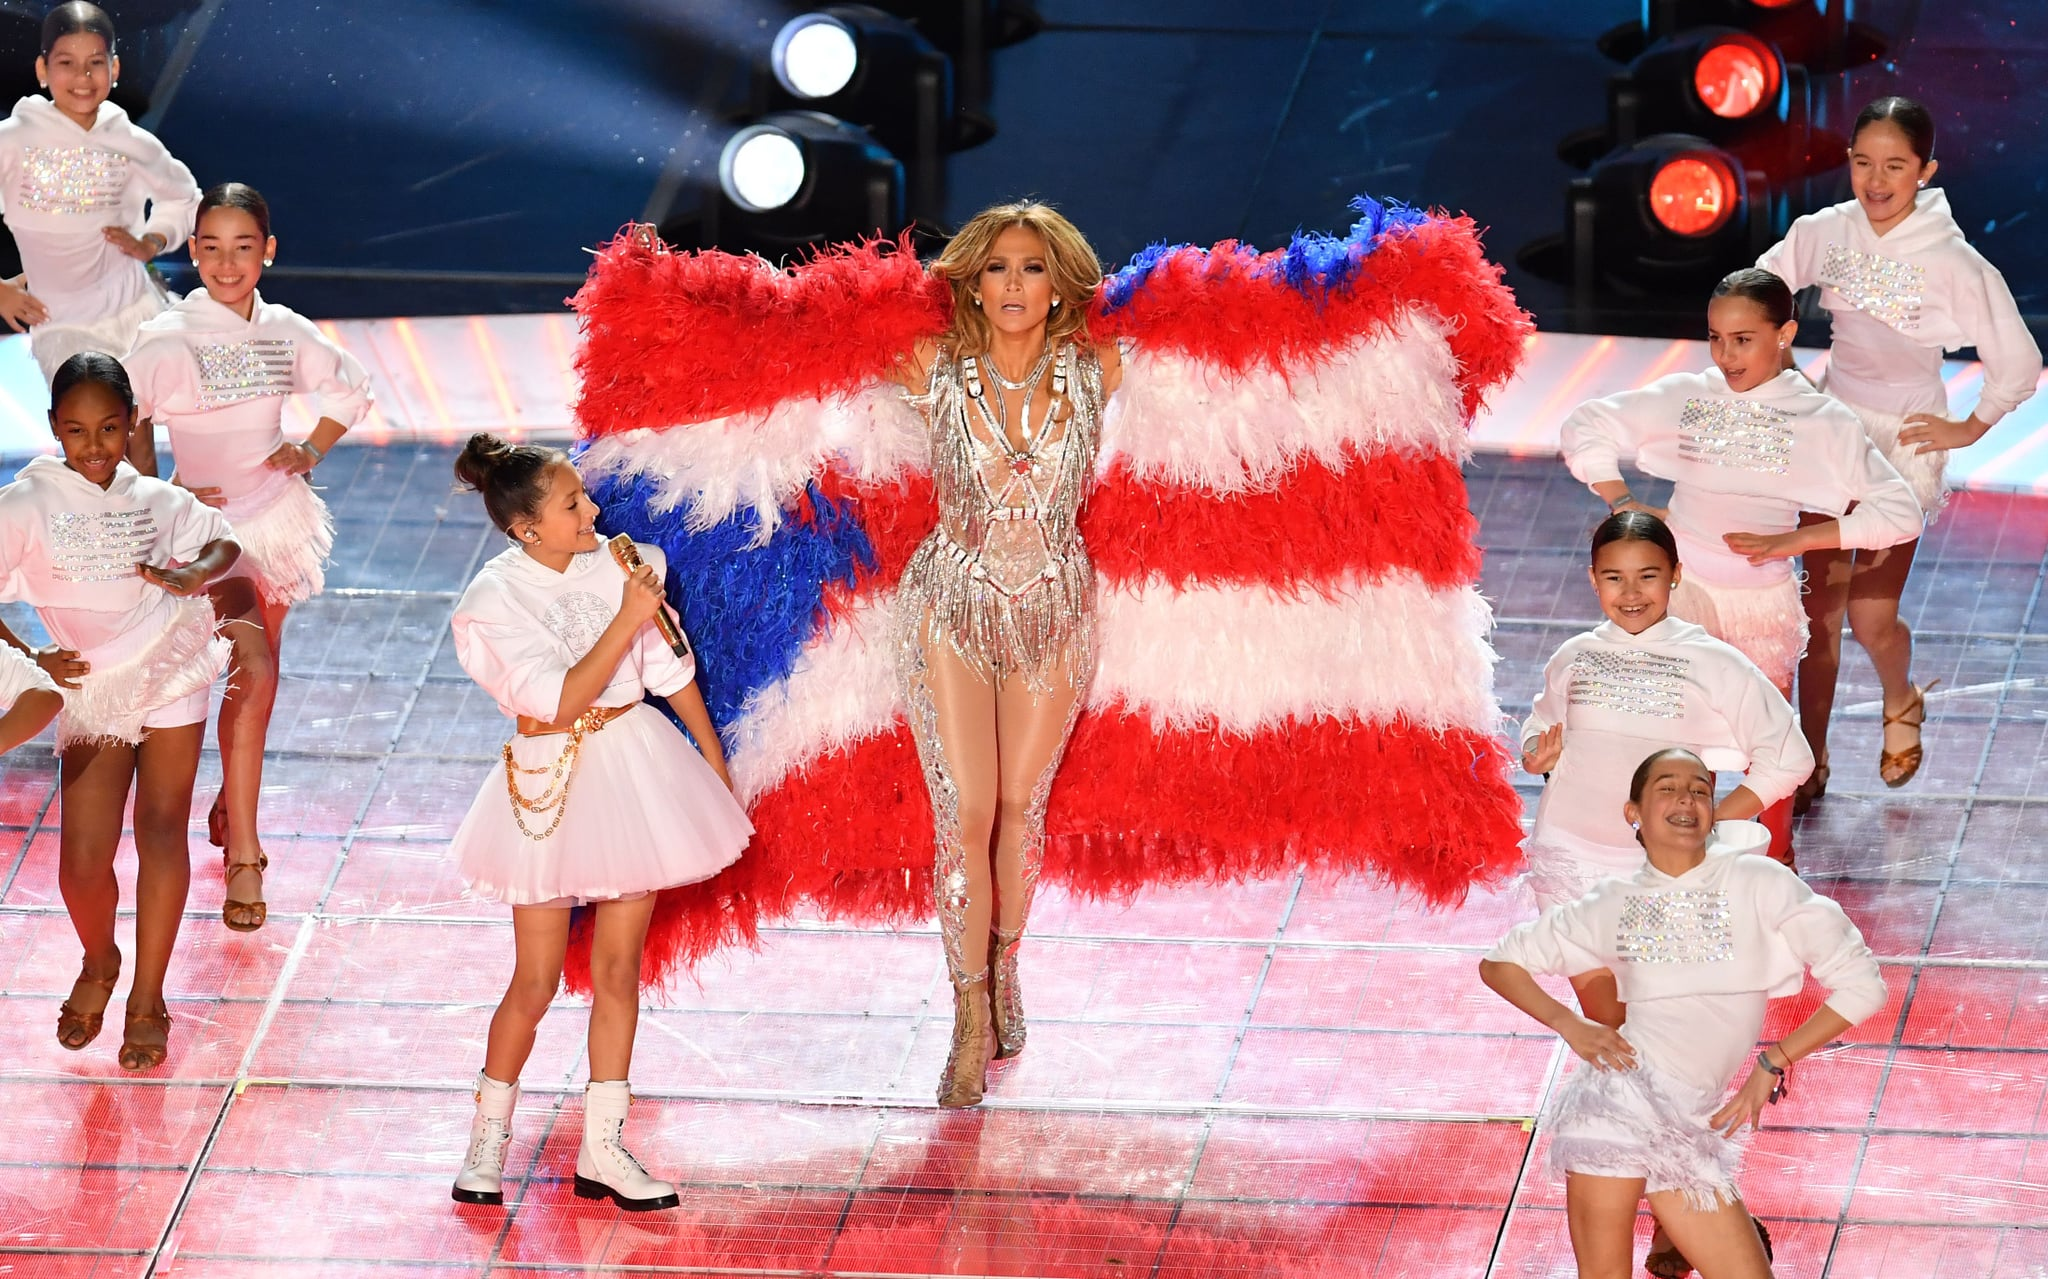 US singer Jennifer Lopez and her daughter Emme Muniz (L) perform during the halftime show of Super Bowl LIV between the Kansas City Chiefs and the San Francisco 49ers at Hard Rock Stadium in Miami Gardens, Florida, on February 2, 2020. (Photo by Angela Weiss / AFP) (Photo by ANGELA WEISS/AFP via Getty Images)